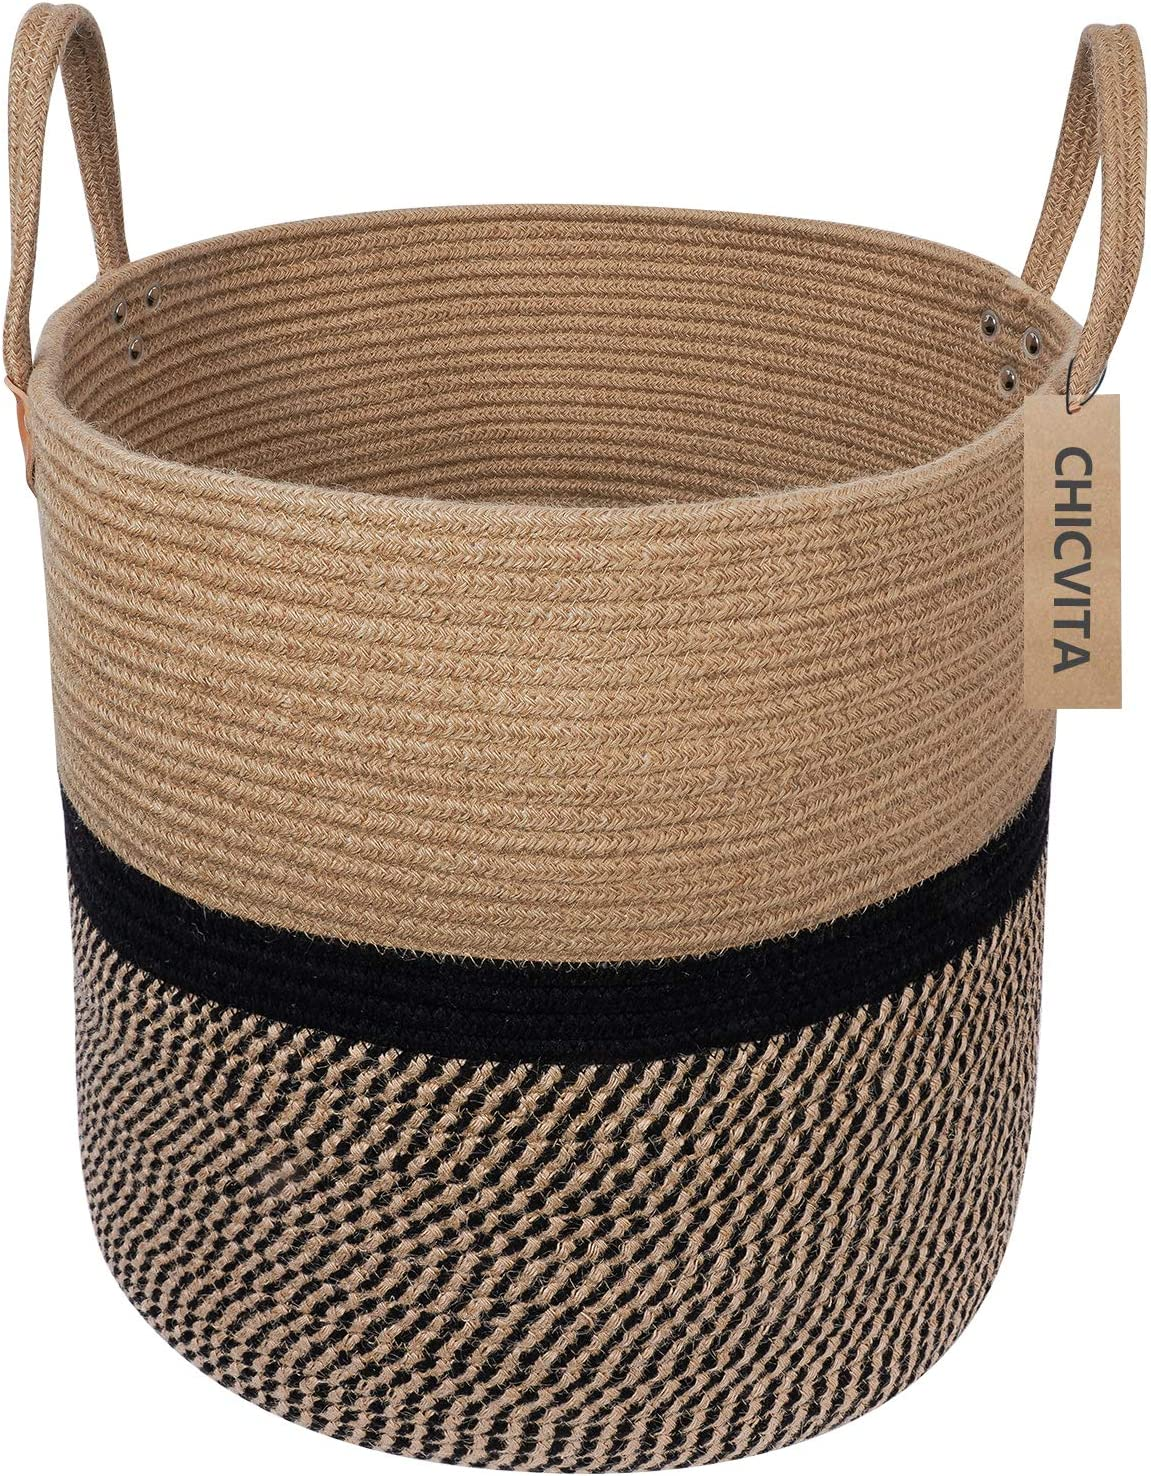 "CHICVITA Extra Large Jute Basket Woven Storage Basket with Handles – Natural Laundry Basket Toy Towels Blanket Basket Home Decor Gift, 16"" x 16"", Black"